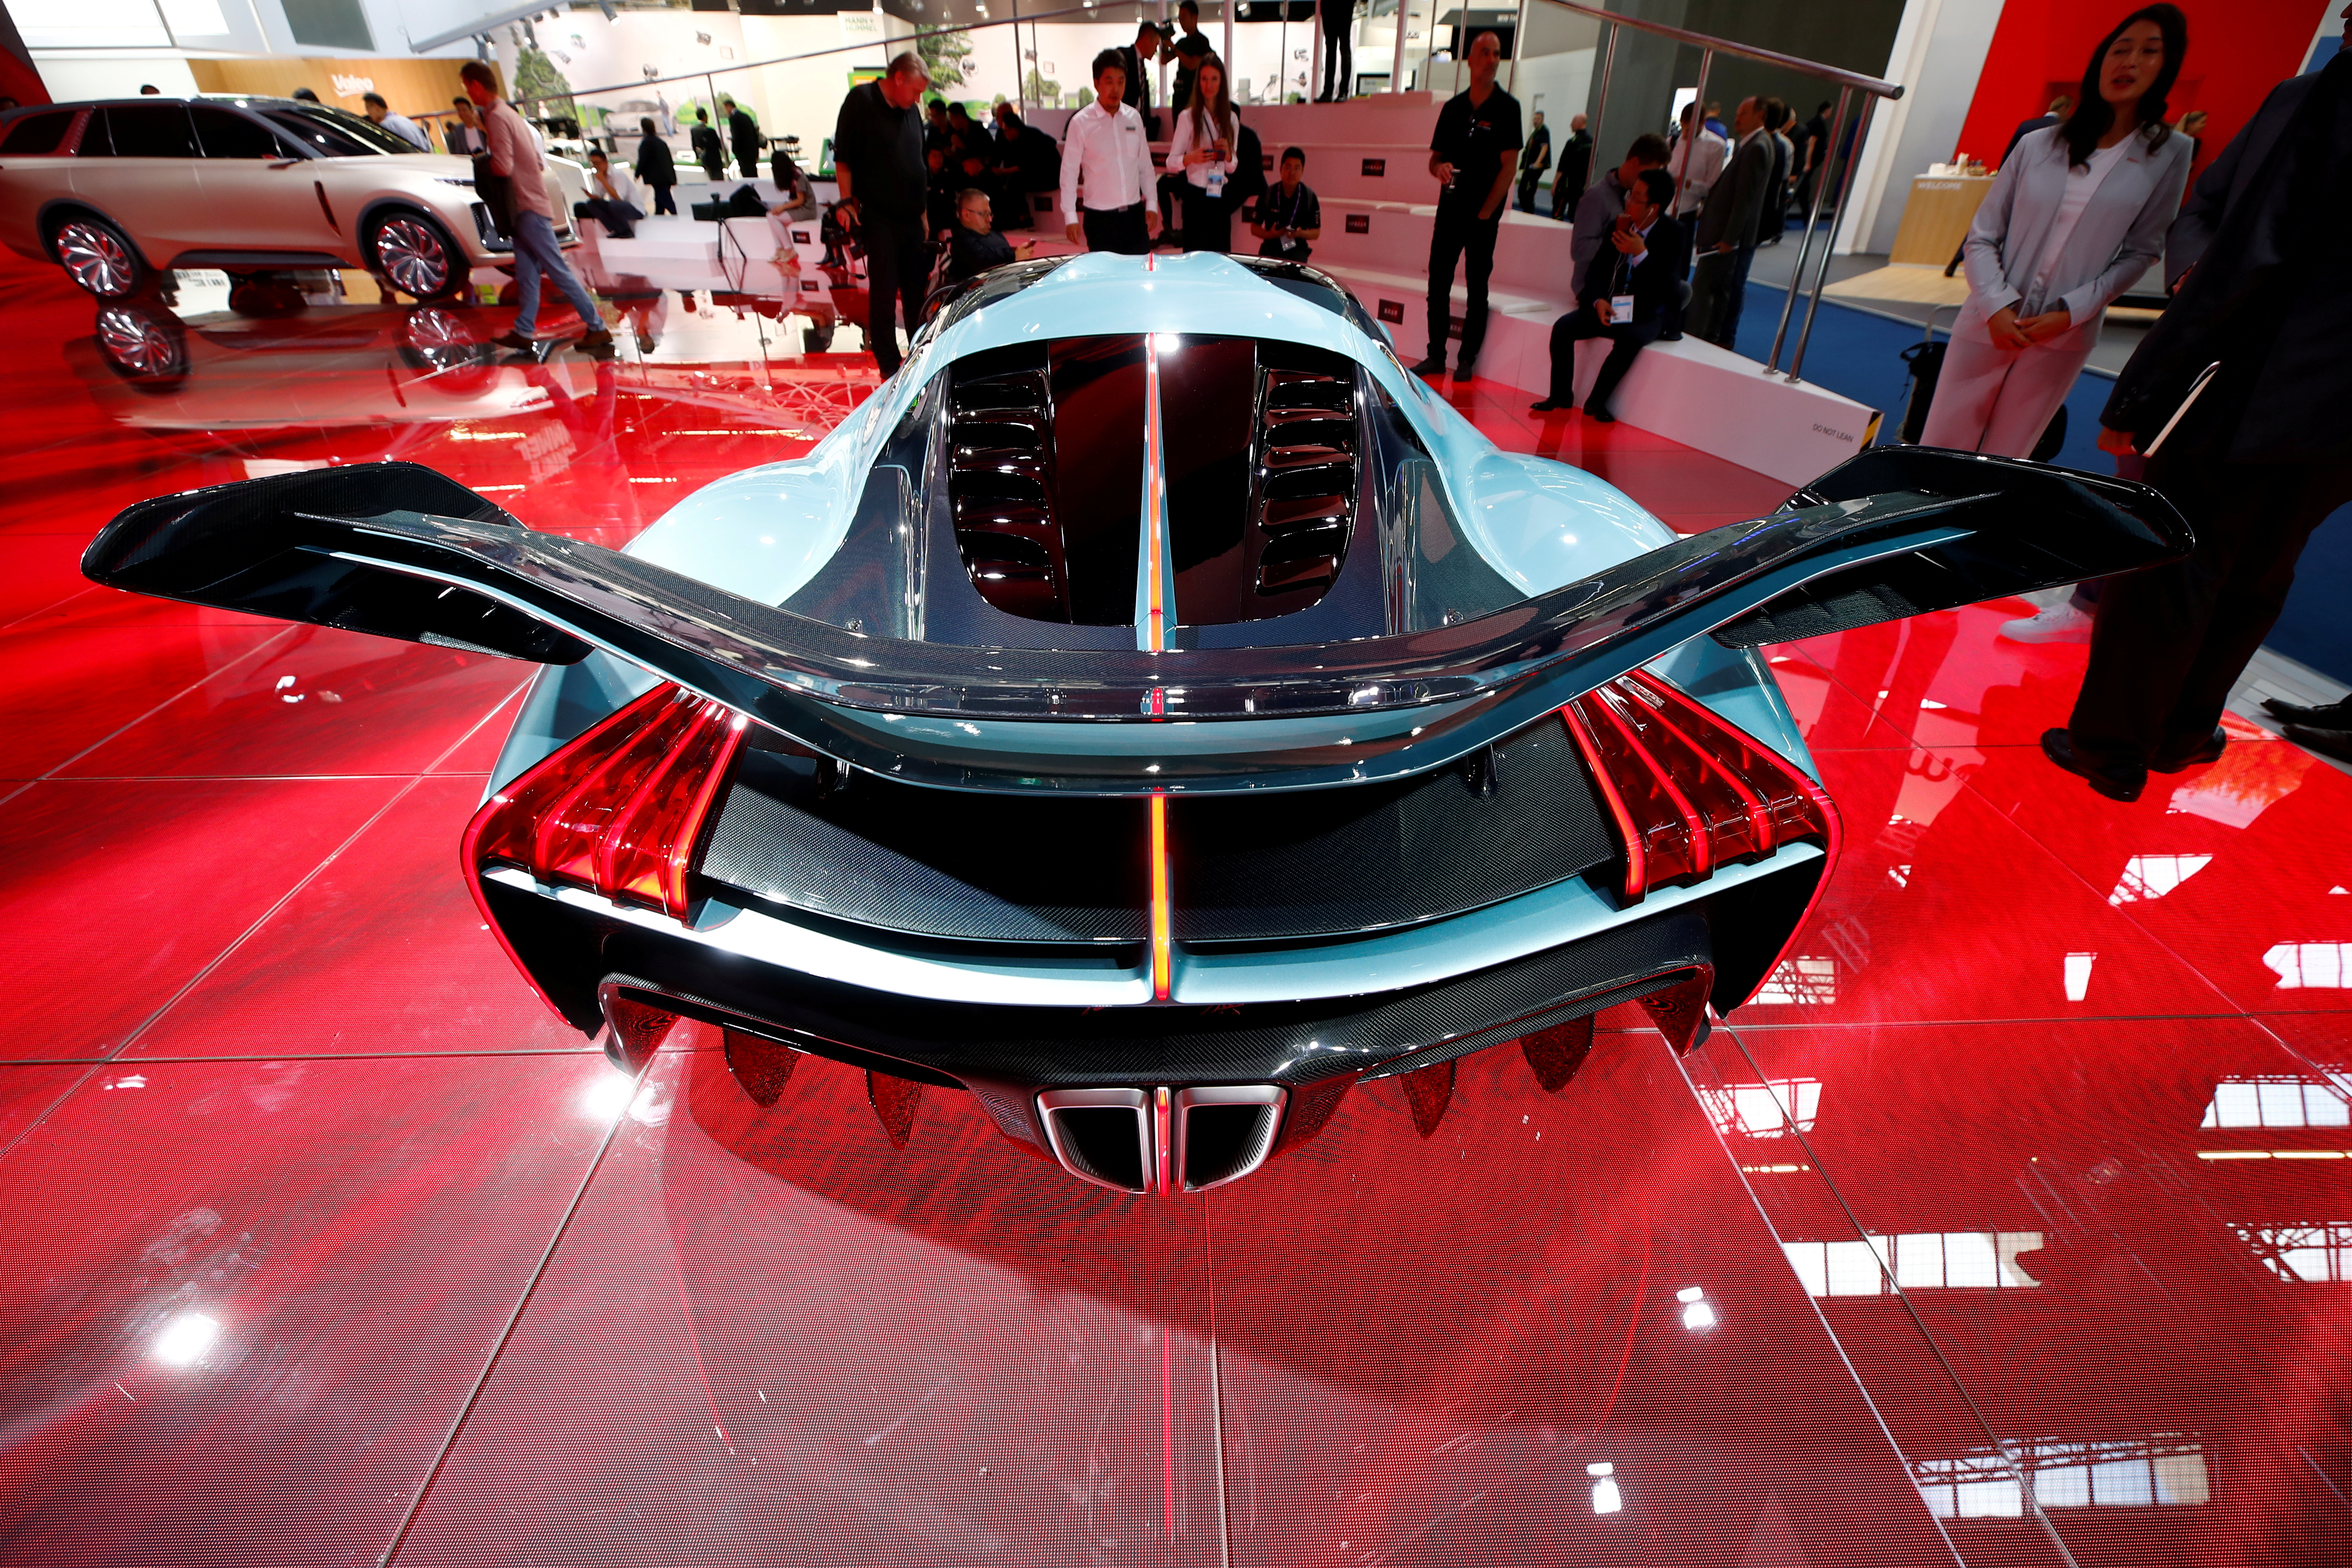 China out in force at Frankfurt car show, led by battery builders